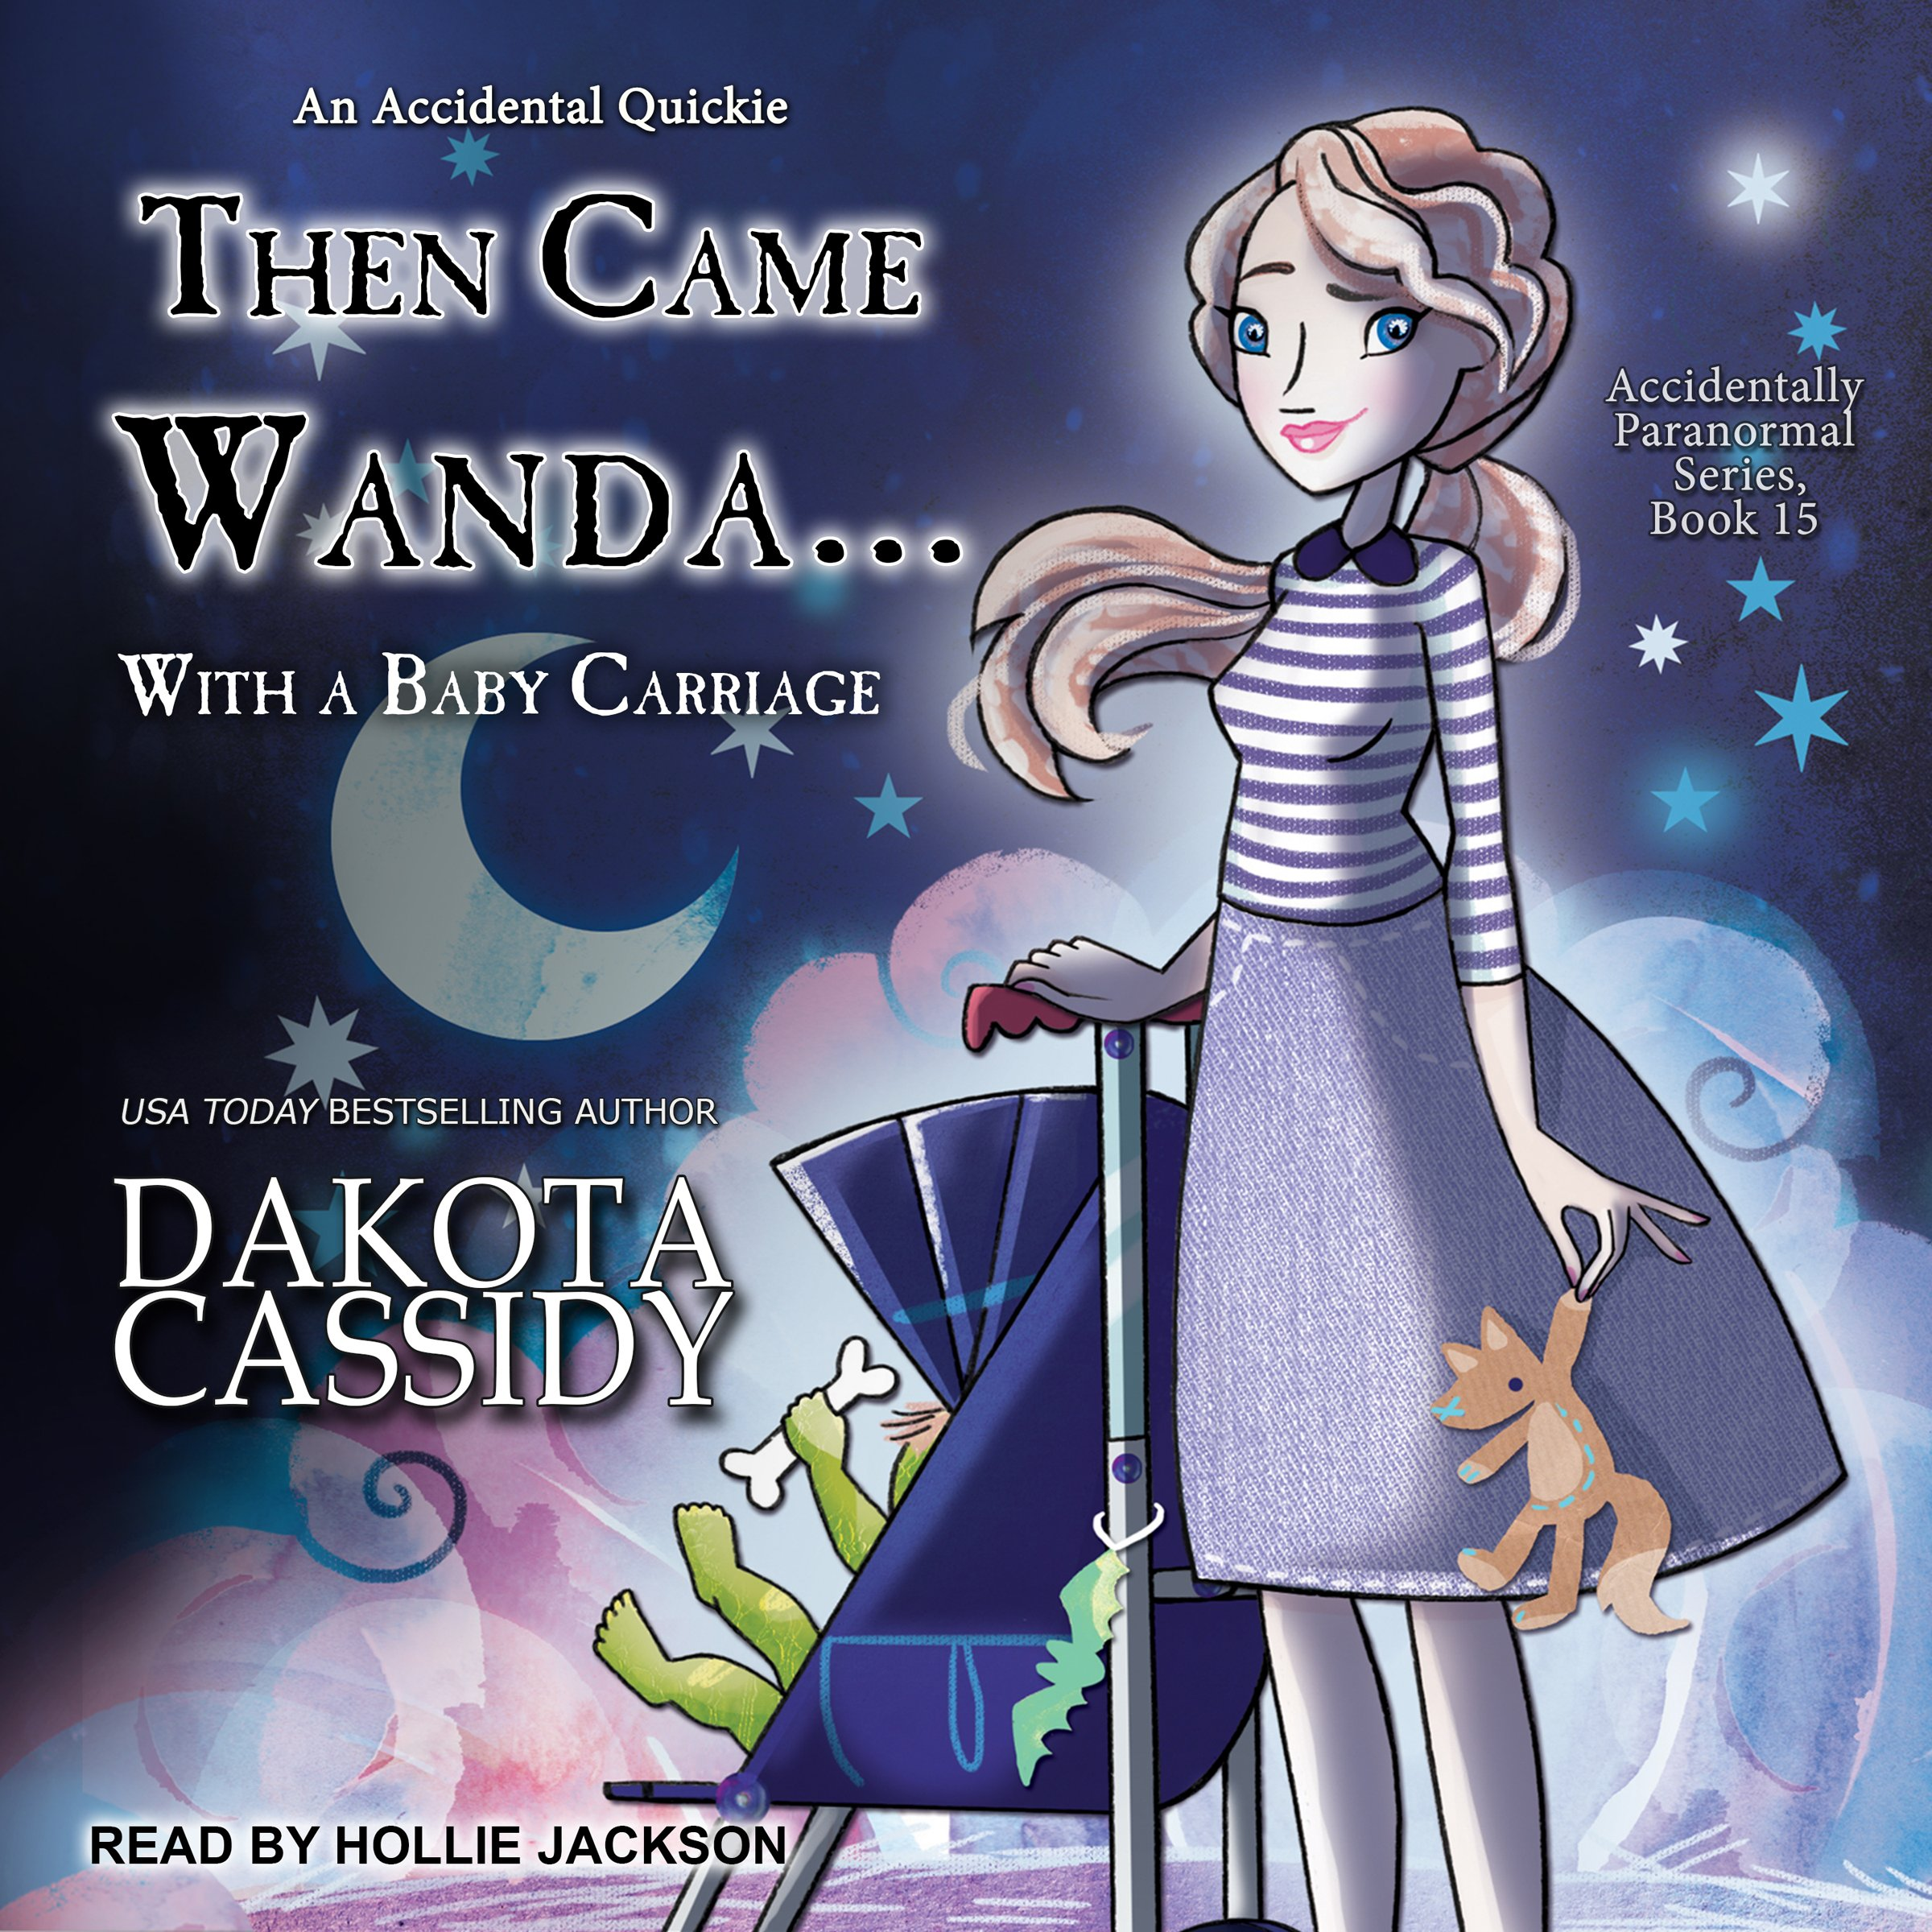 Then Came Wanda.with a Baby Carriage: Accidentally Paranormal Series, Book 15